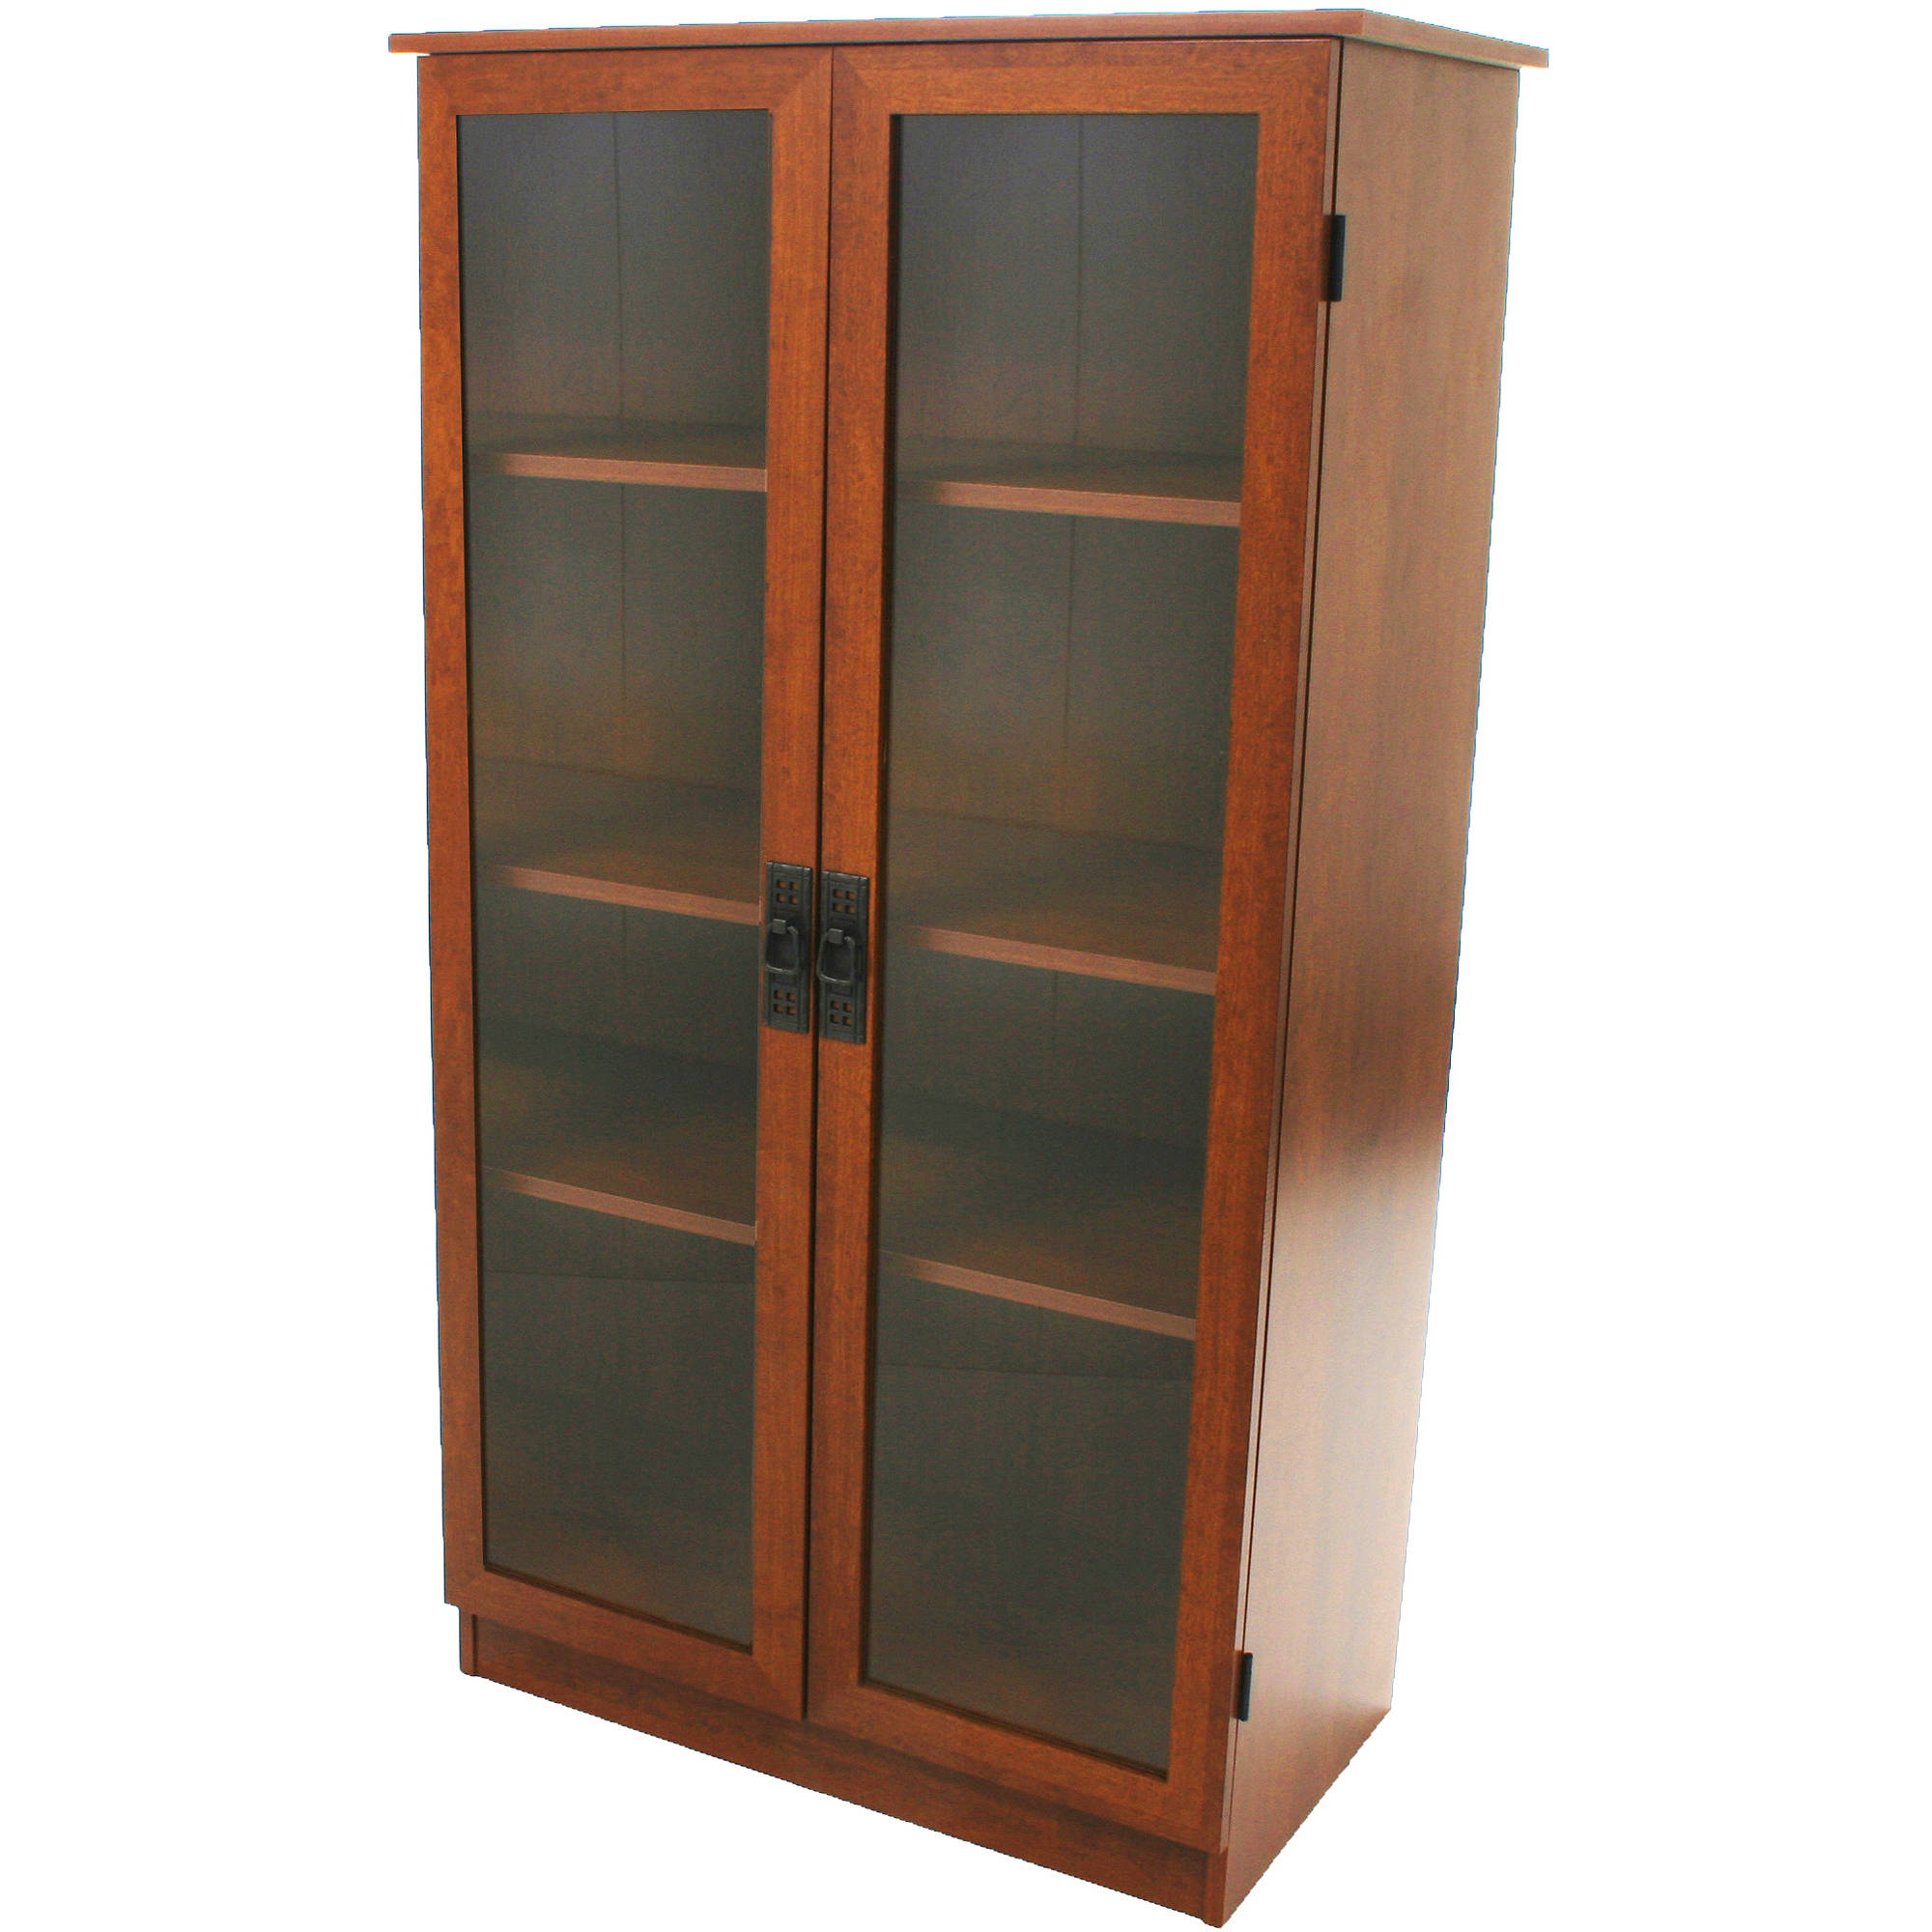 Heirloom Storage Cabinet with 4 Shelves, Multiple Finishes